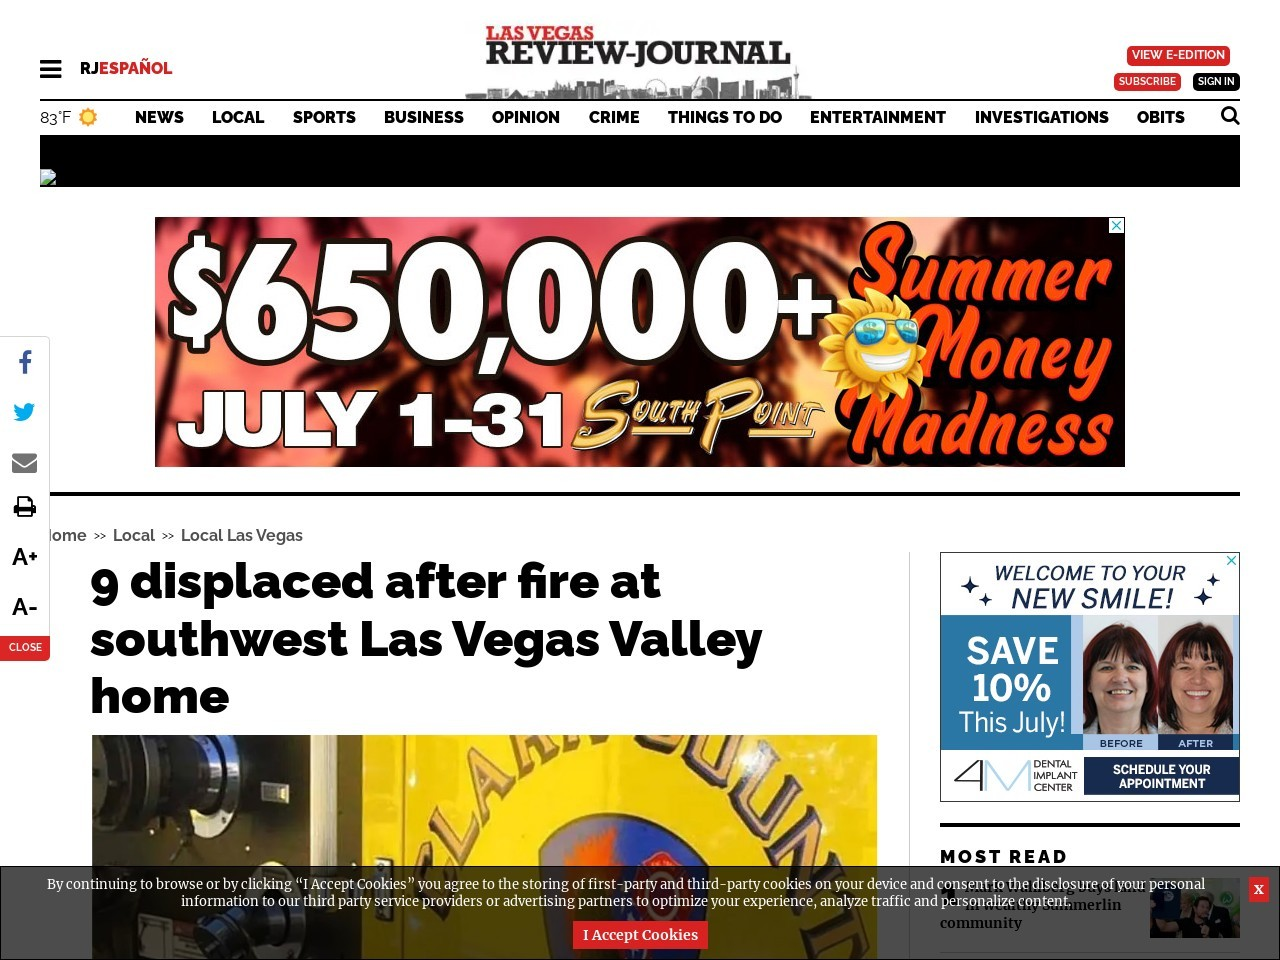 9 displaced after fire at southwest Las Vegas Valley home